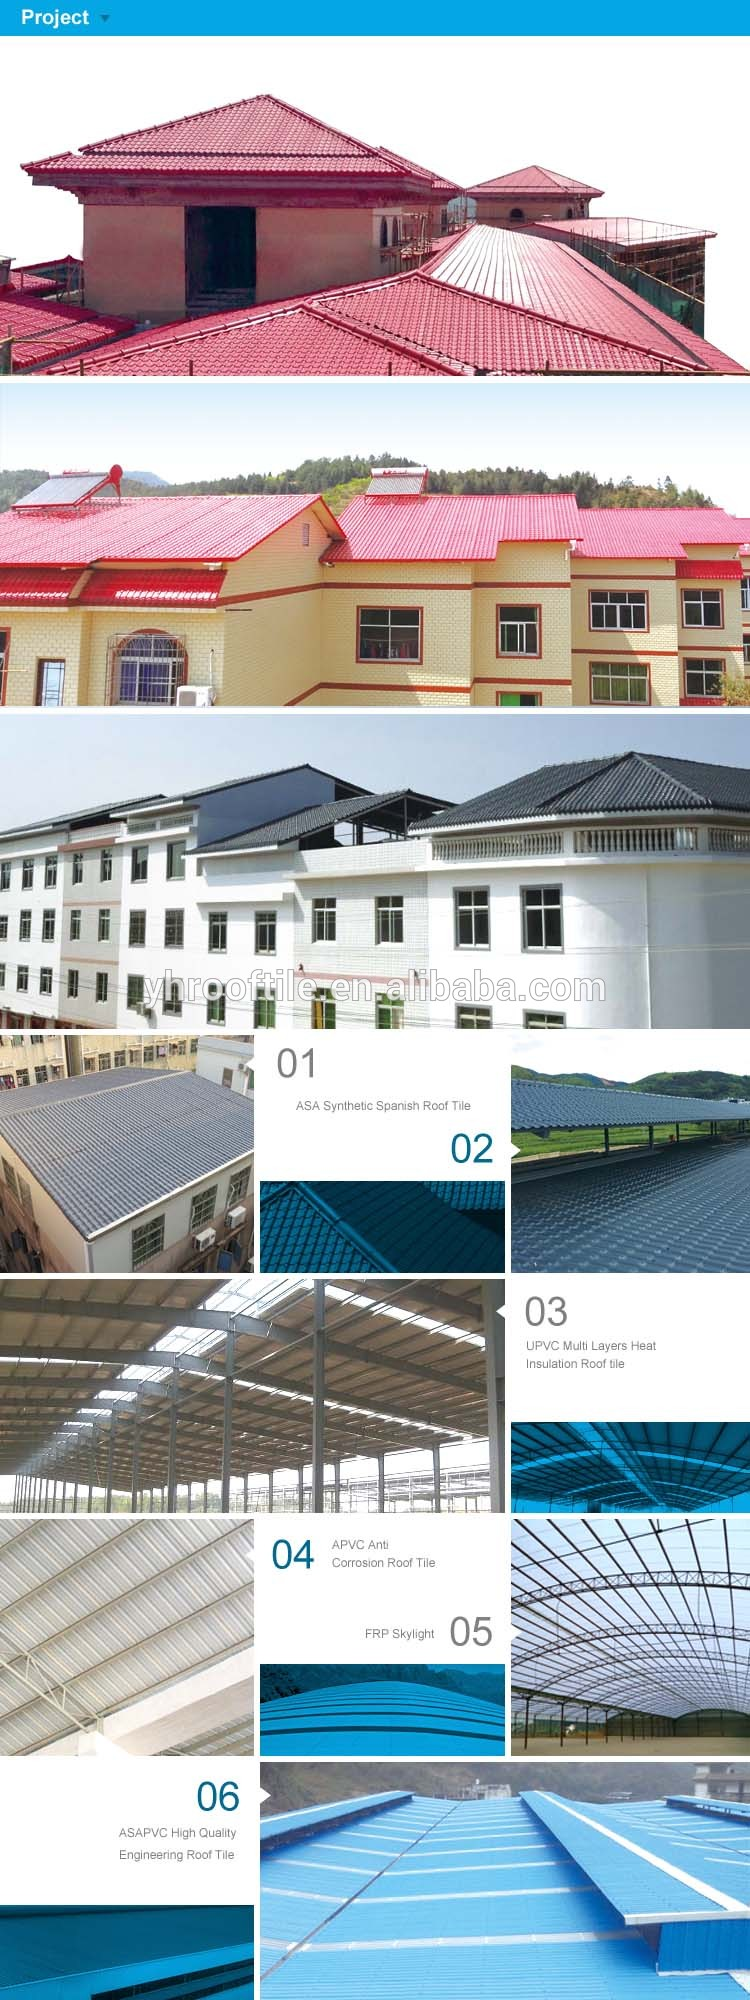 roof tile project around Asia